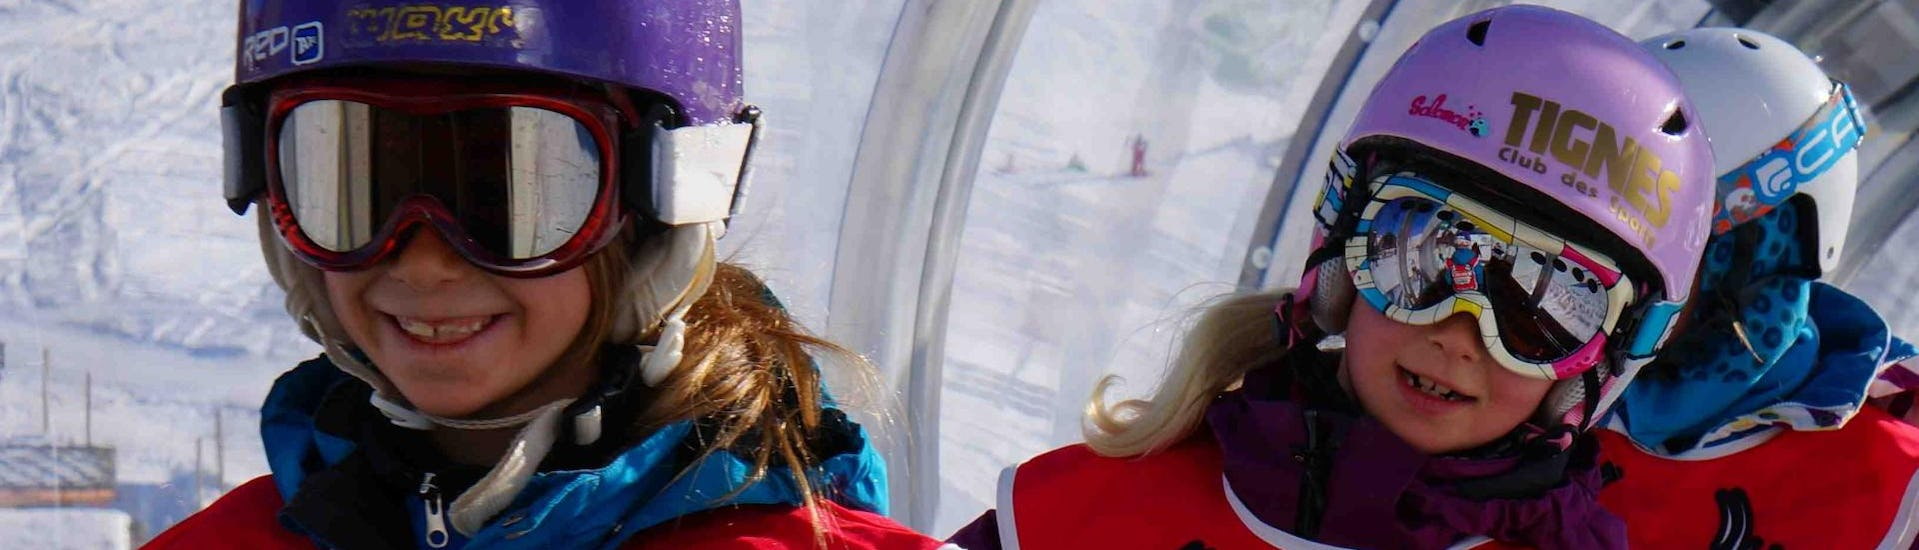 Two young children are enjoying their first session of Private Snowboarding Lessons - All Levels & Ages in the ski resort Val d'Isère.